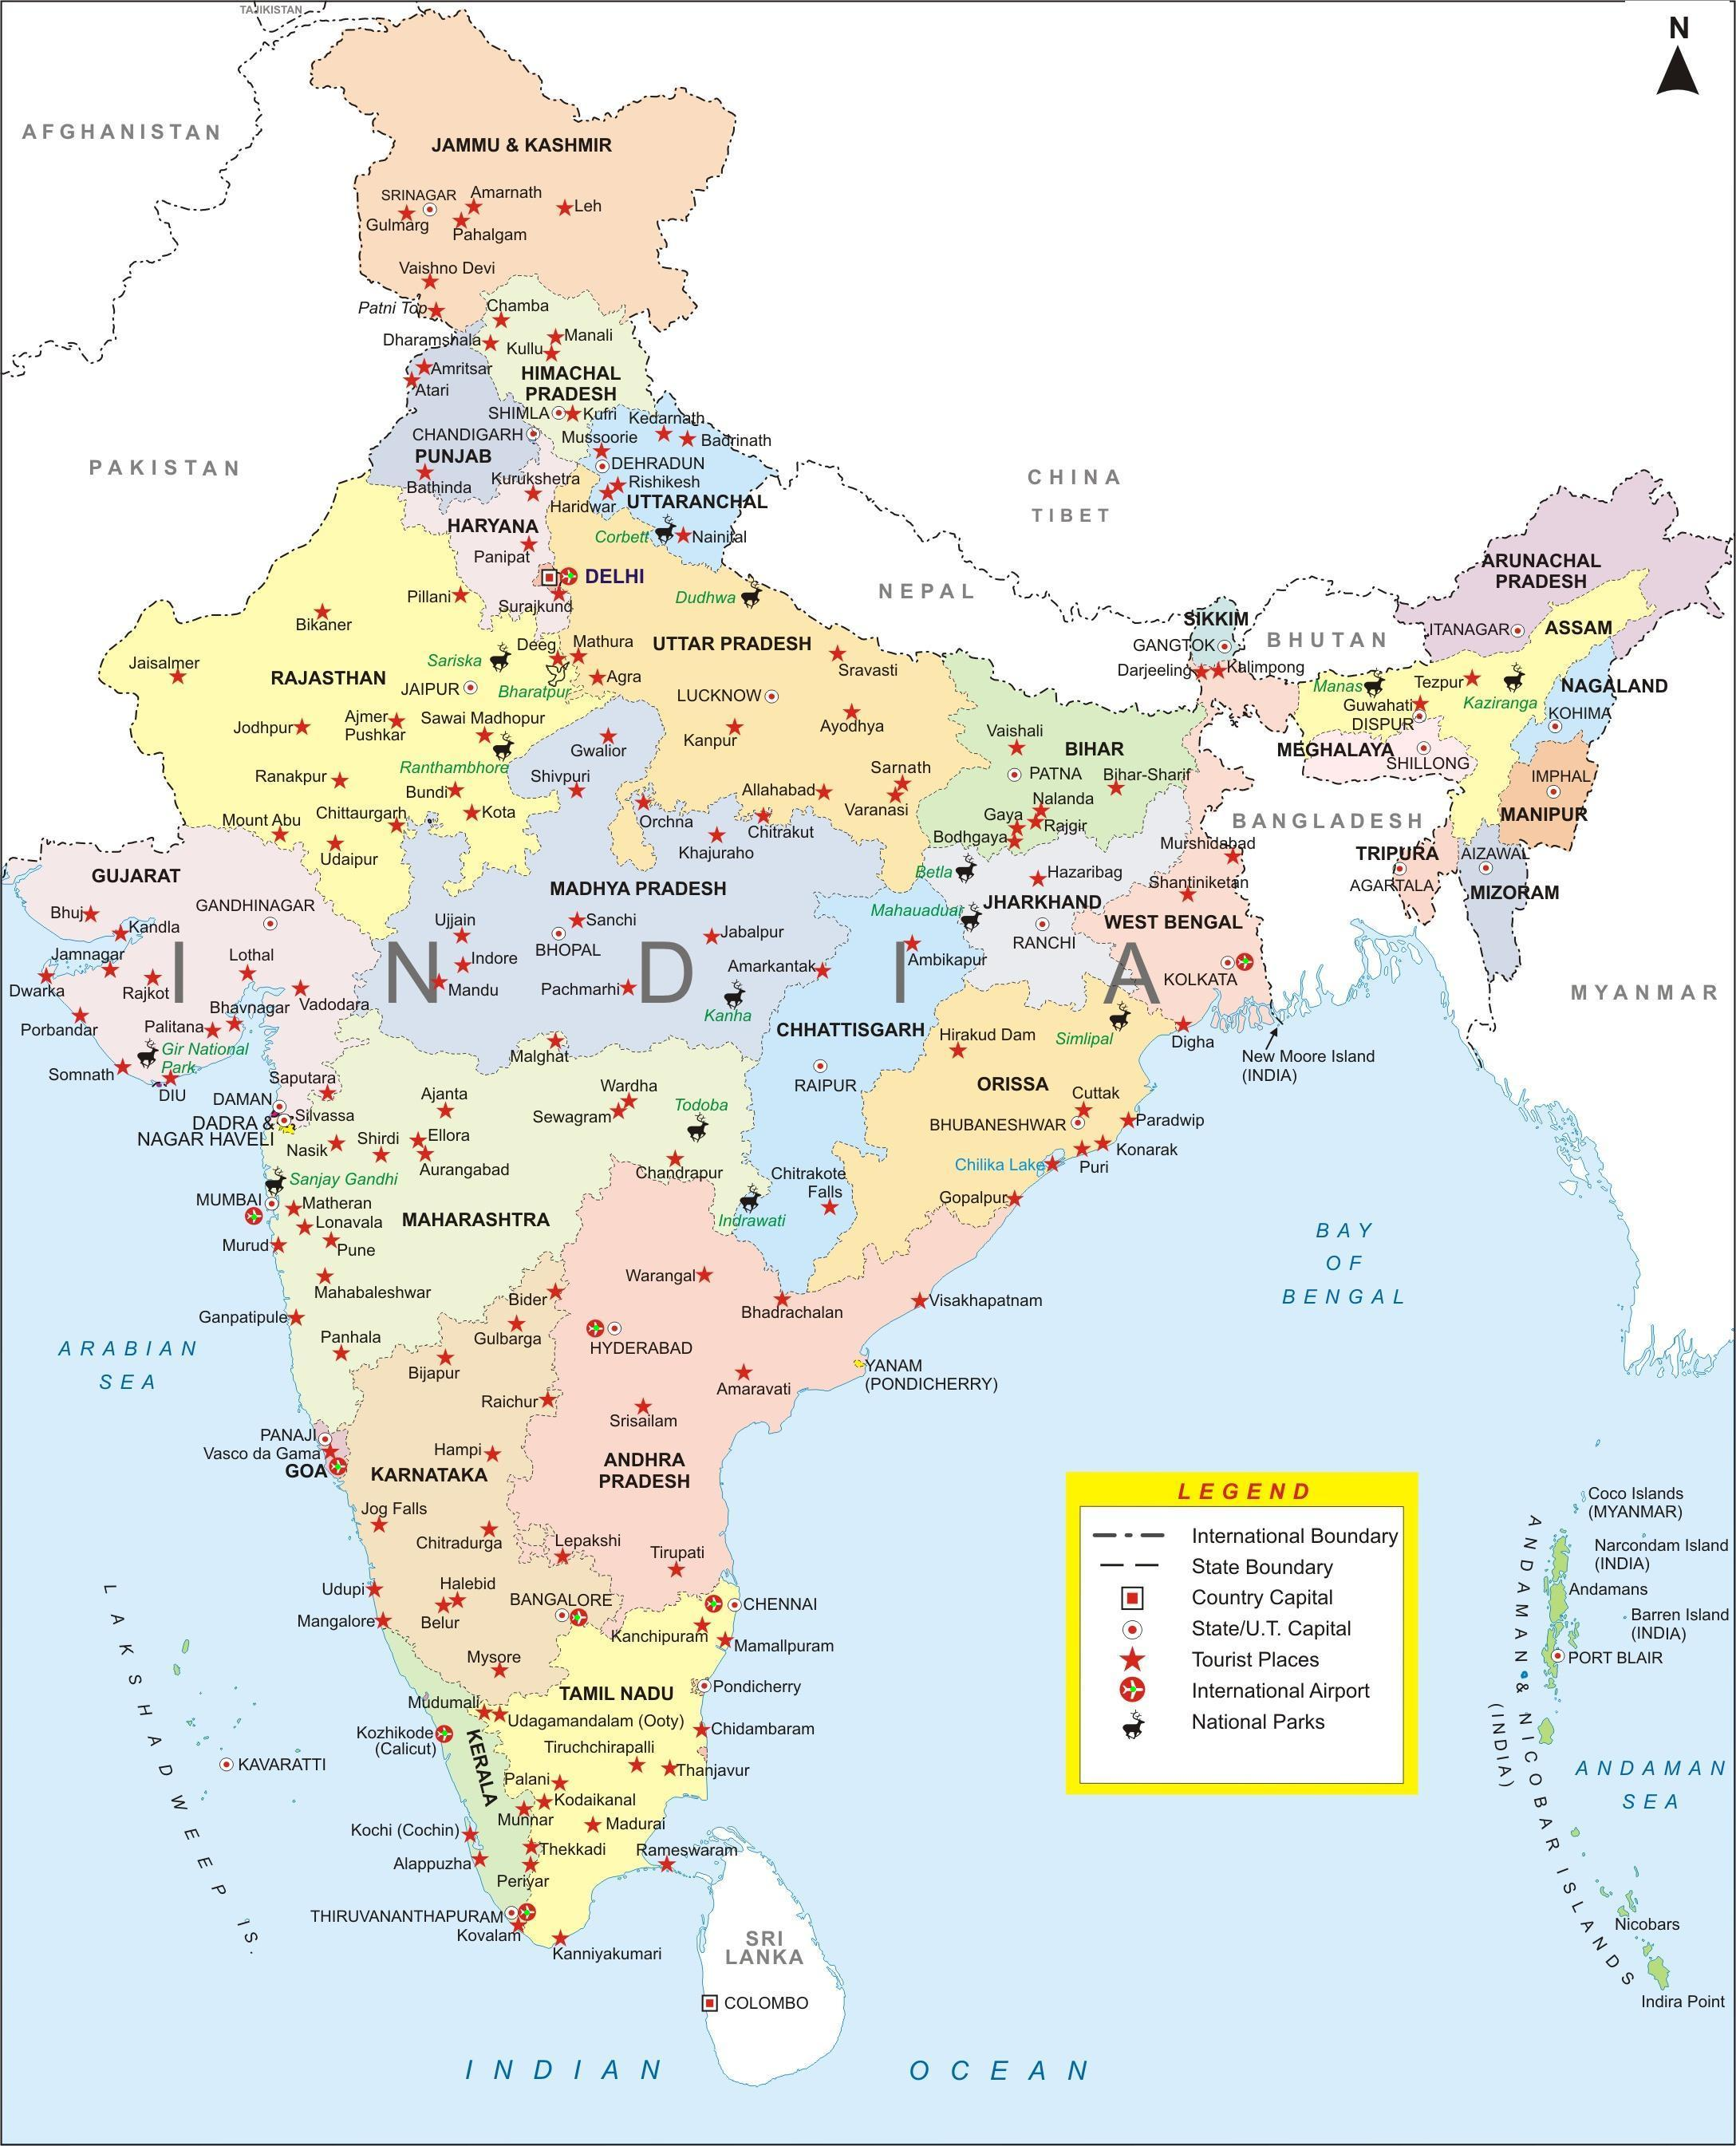 India map with state and city name - India map state and city wise on india statistics by state, weather by state, india map software, india map show, india map nh, india distance is it is now, india map highest point, india and its states, india map geography, india map city, india map with states and cities, india map outline with states, india map search, india map resources, india map region, india map 2015, india map national parks, india capital map, india map international,